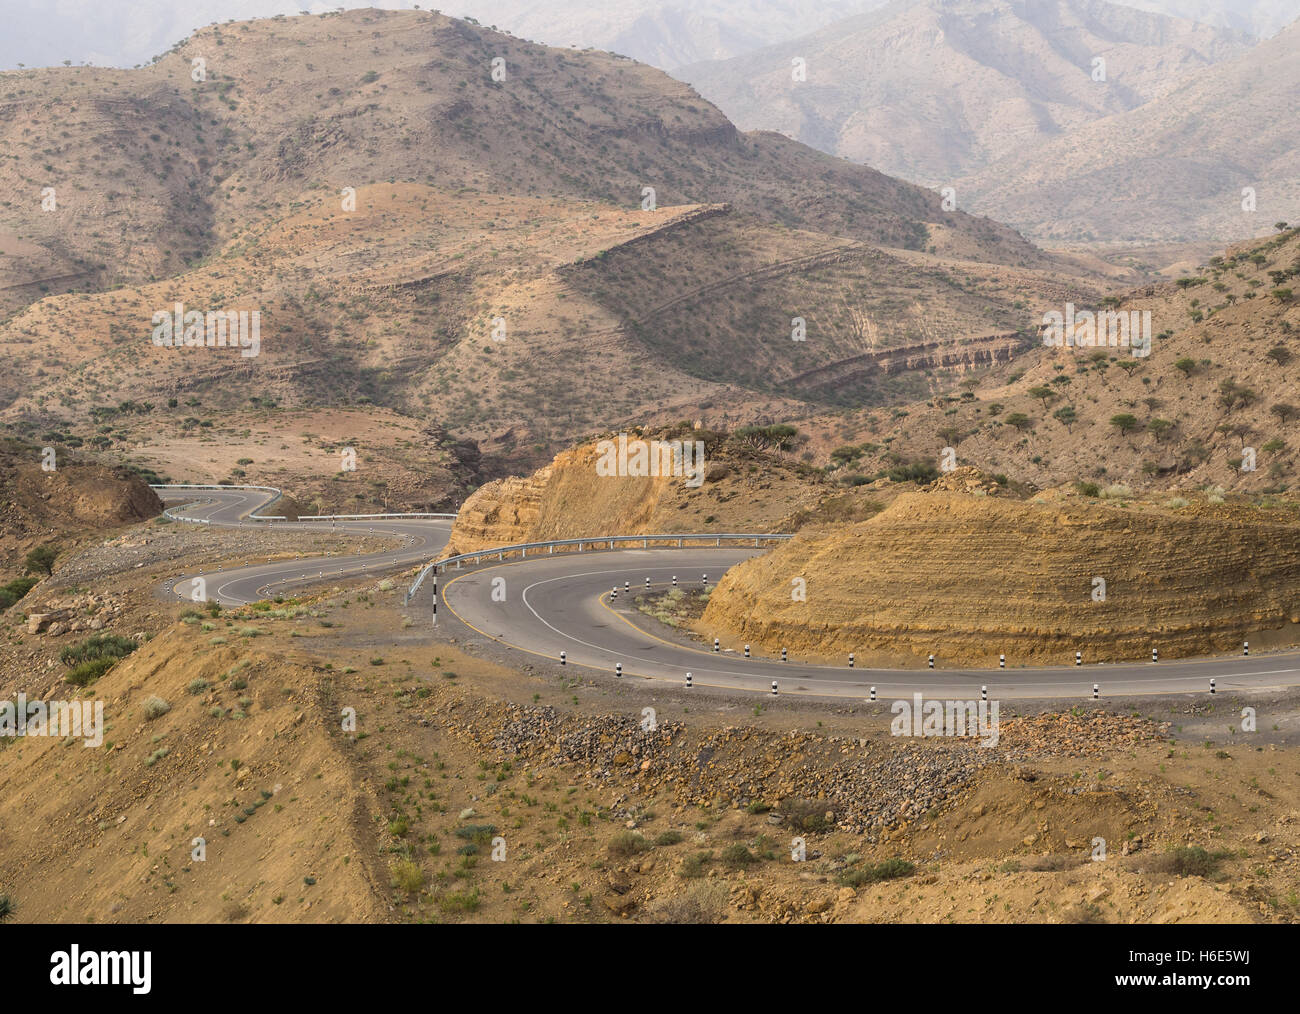 Road running through dry landscape in Ethiopia in July. - Stock Image